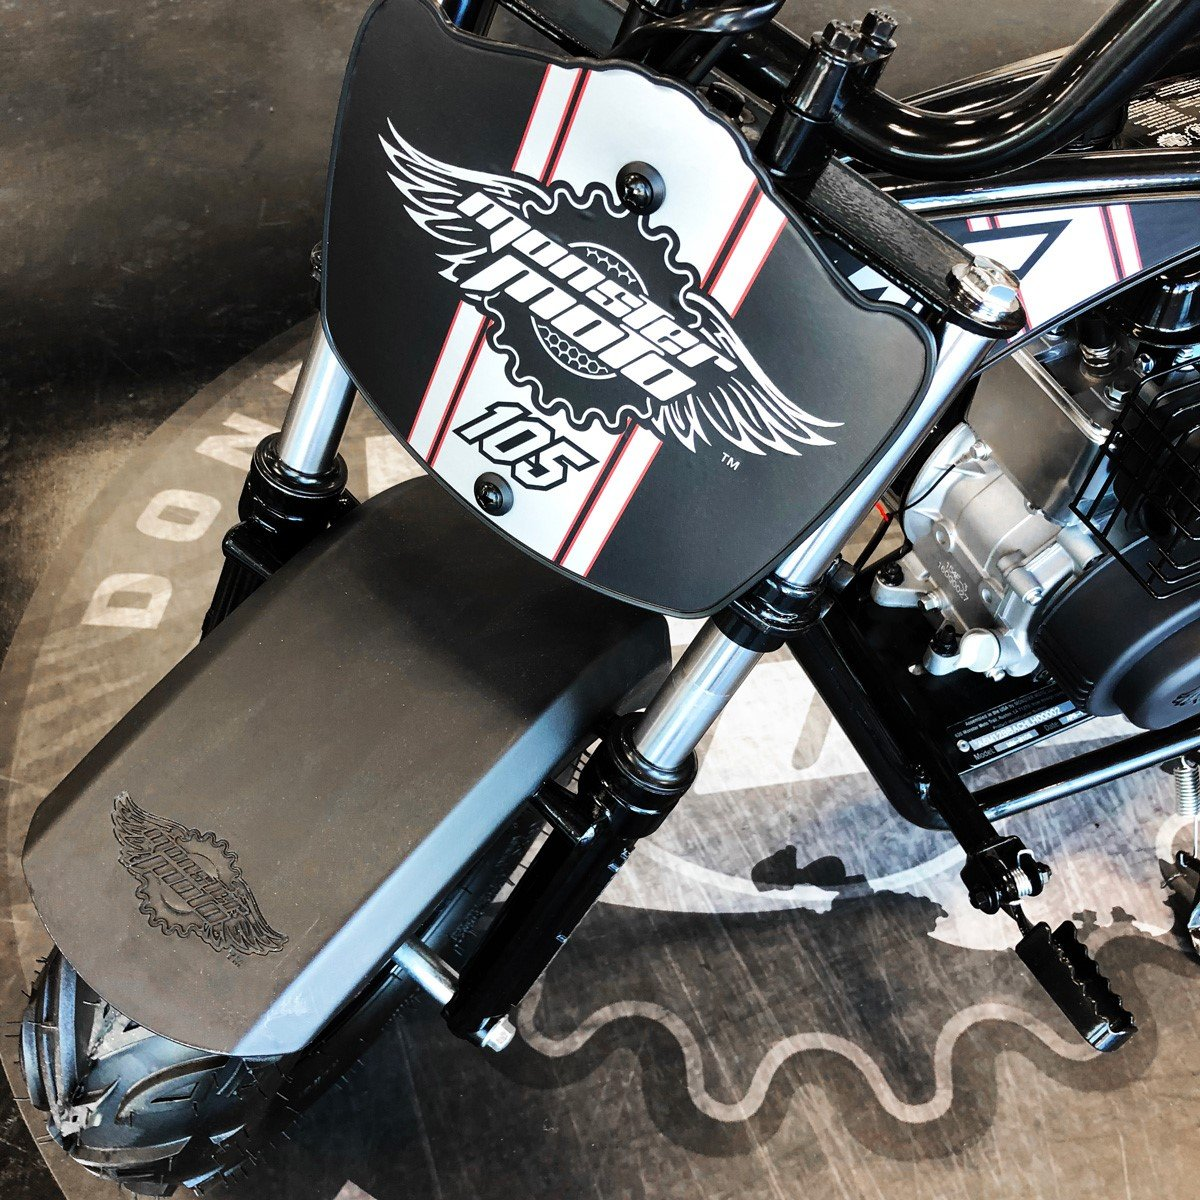 Monster Moto Limited Edition Black on Silver 105CC Mini Bike with Front Suspension-MM-B105-BBX by Monster Moto (Image #6)